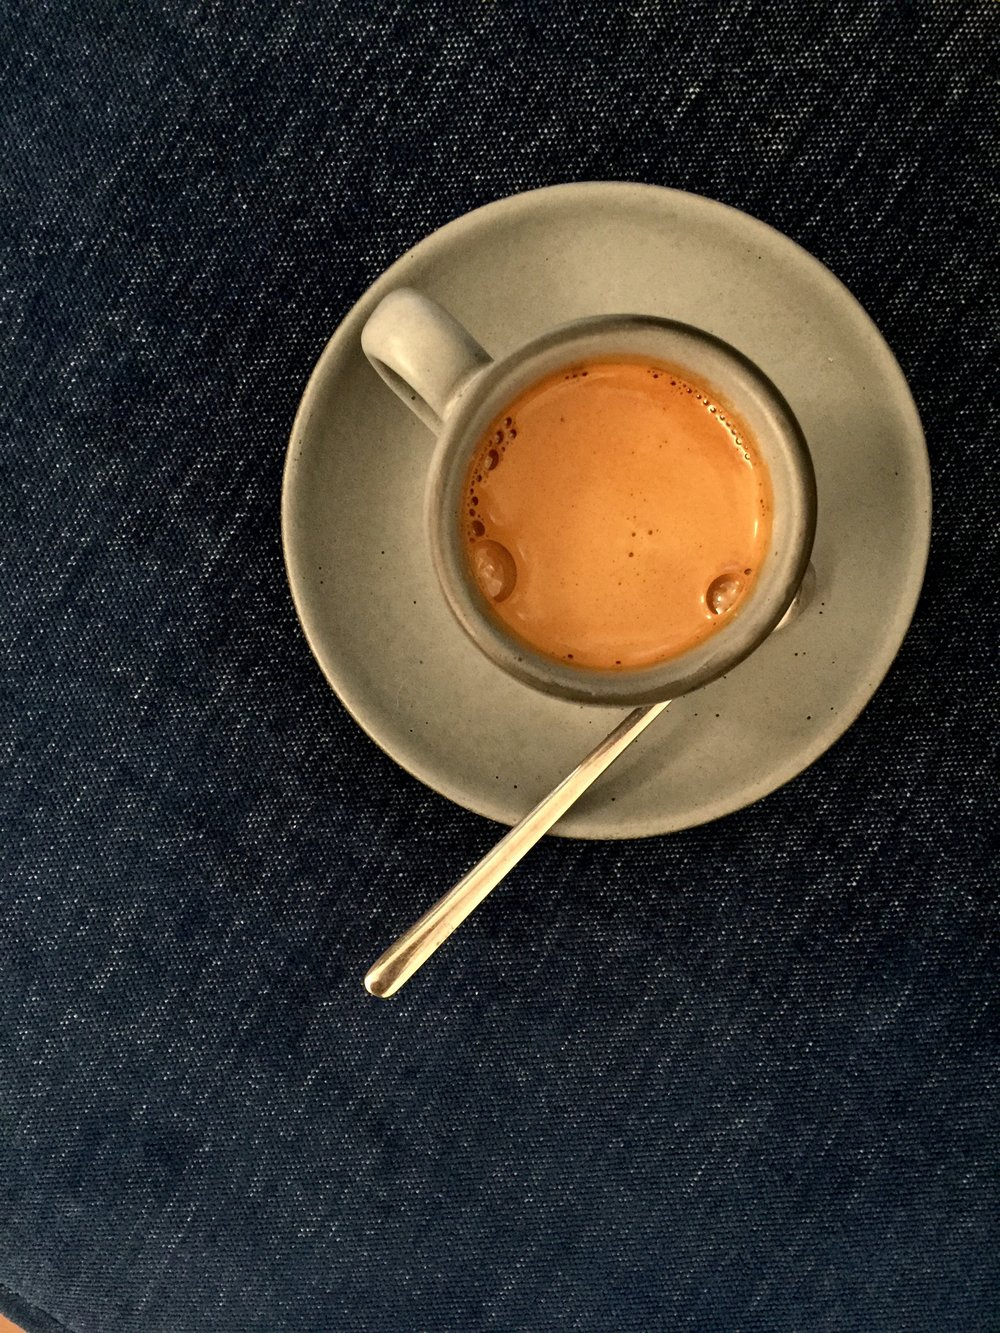 Cafe Integral  serves delicious espresso in the prettiest ceramic cup